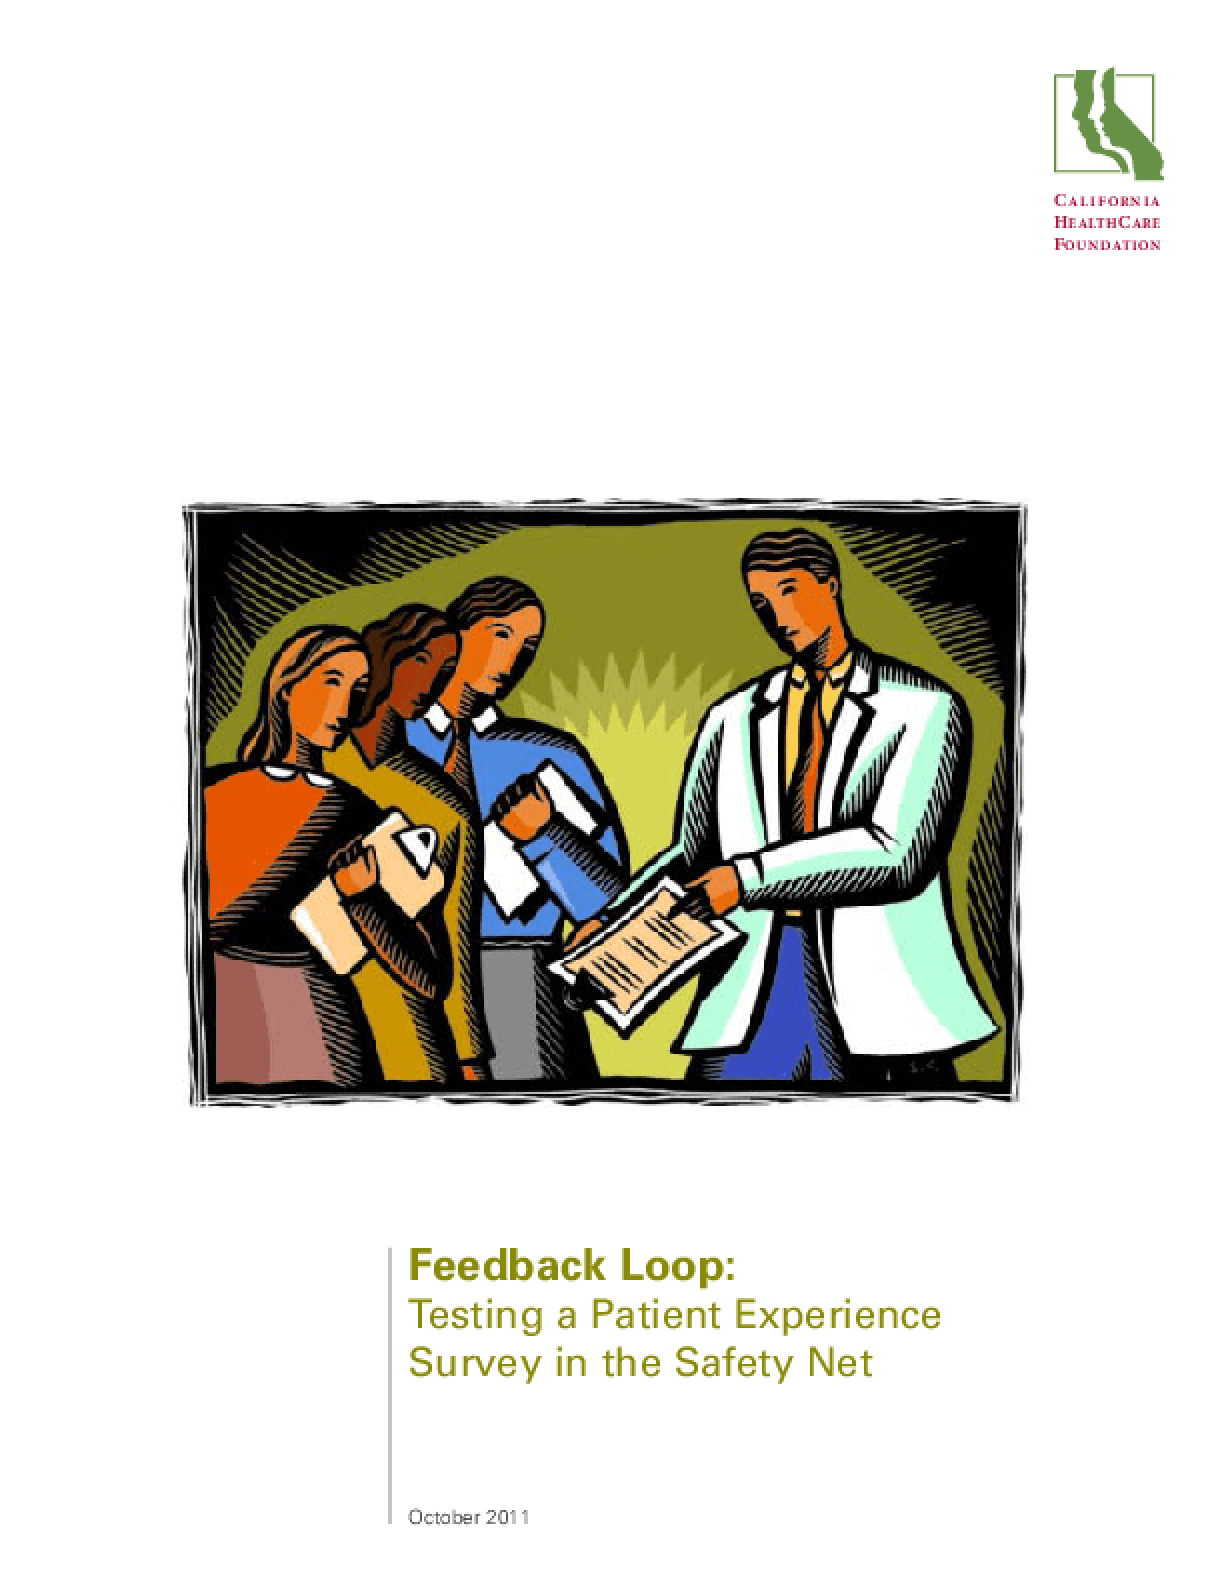 Feedback Loop: Testing a Patient Experience Survey in the Safety Net